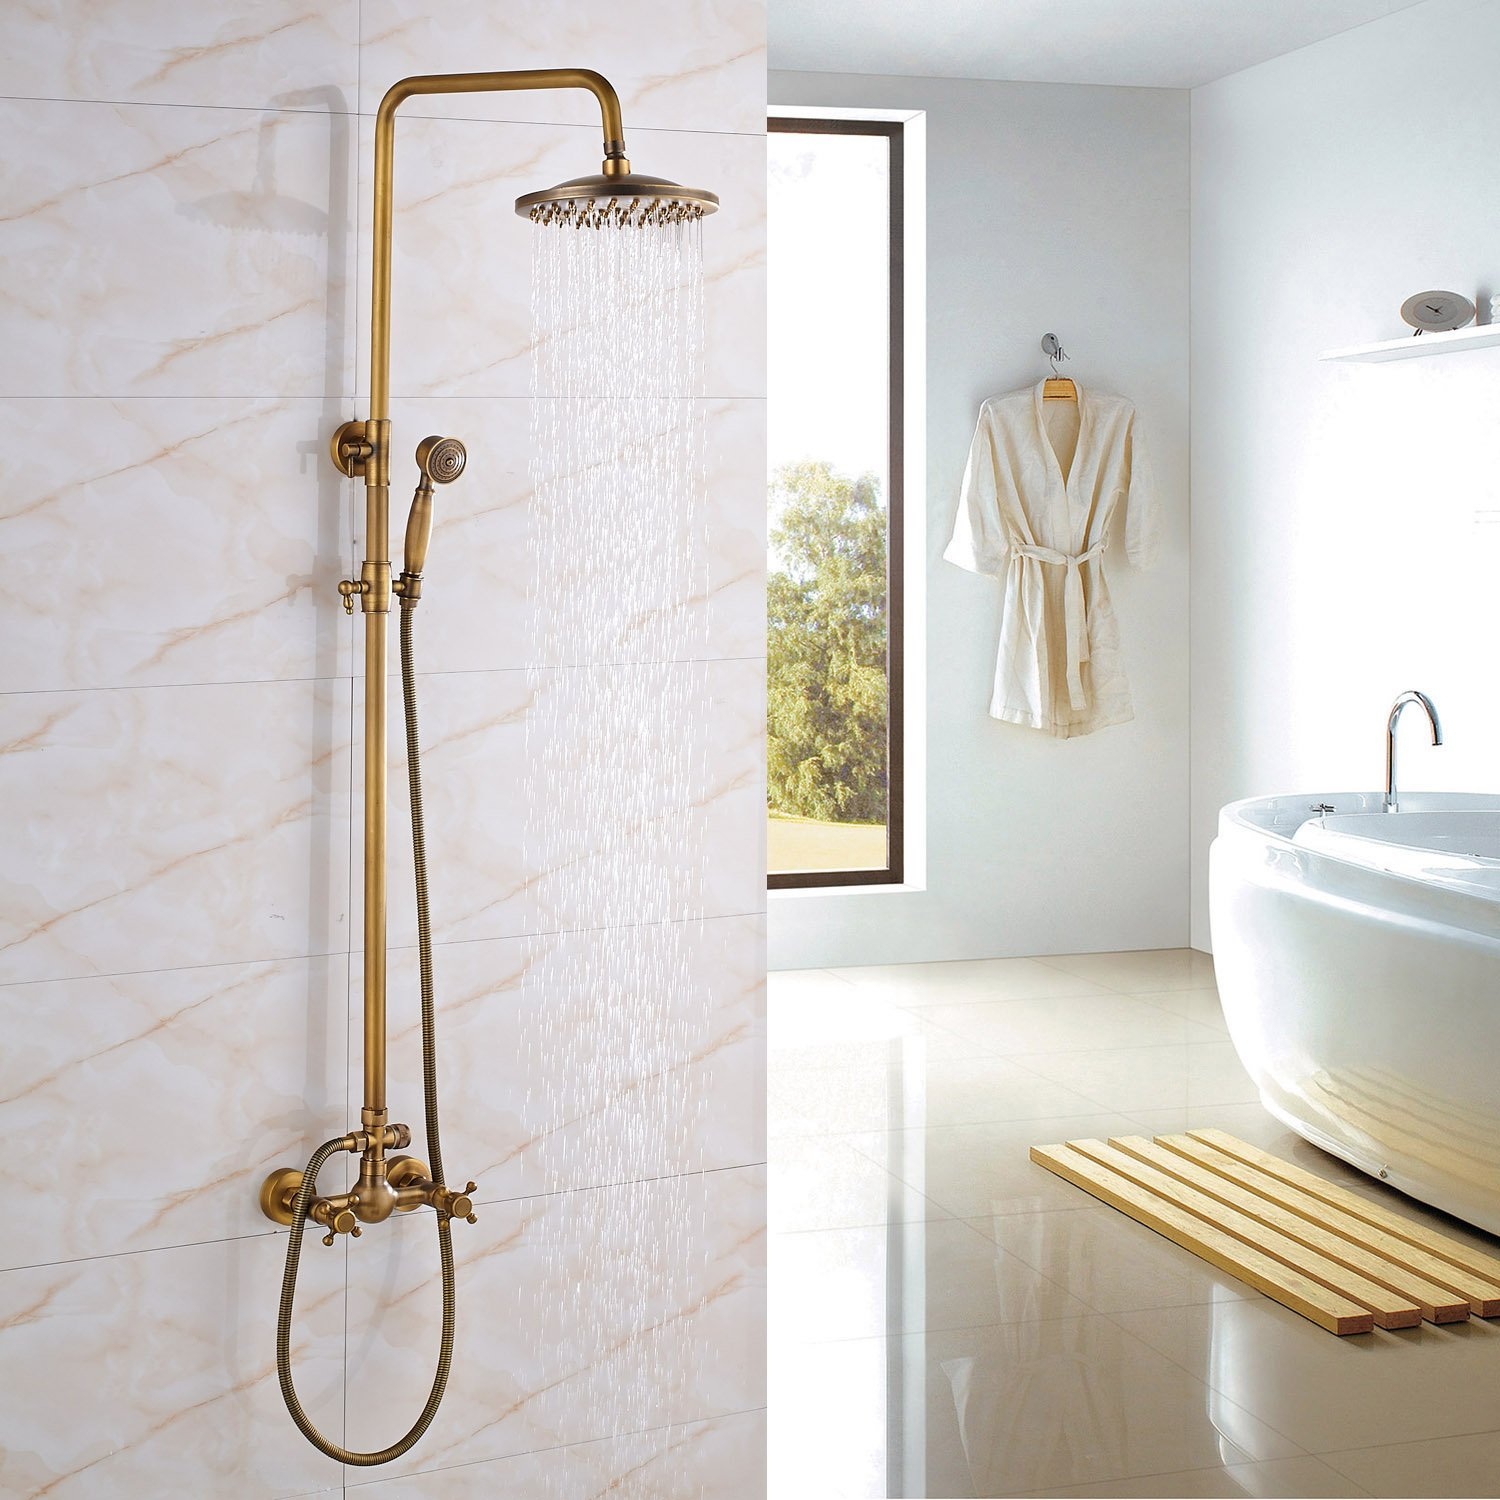 Rozin Bathroom 2 Knobs Mixer Rainfall Shower Faucet Units with Hand Spray Antique Brass by Rozin (Image #2)